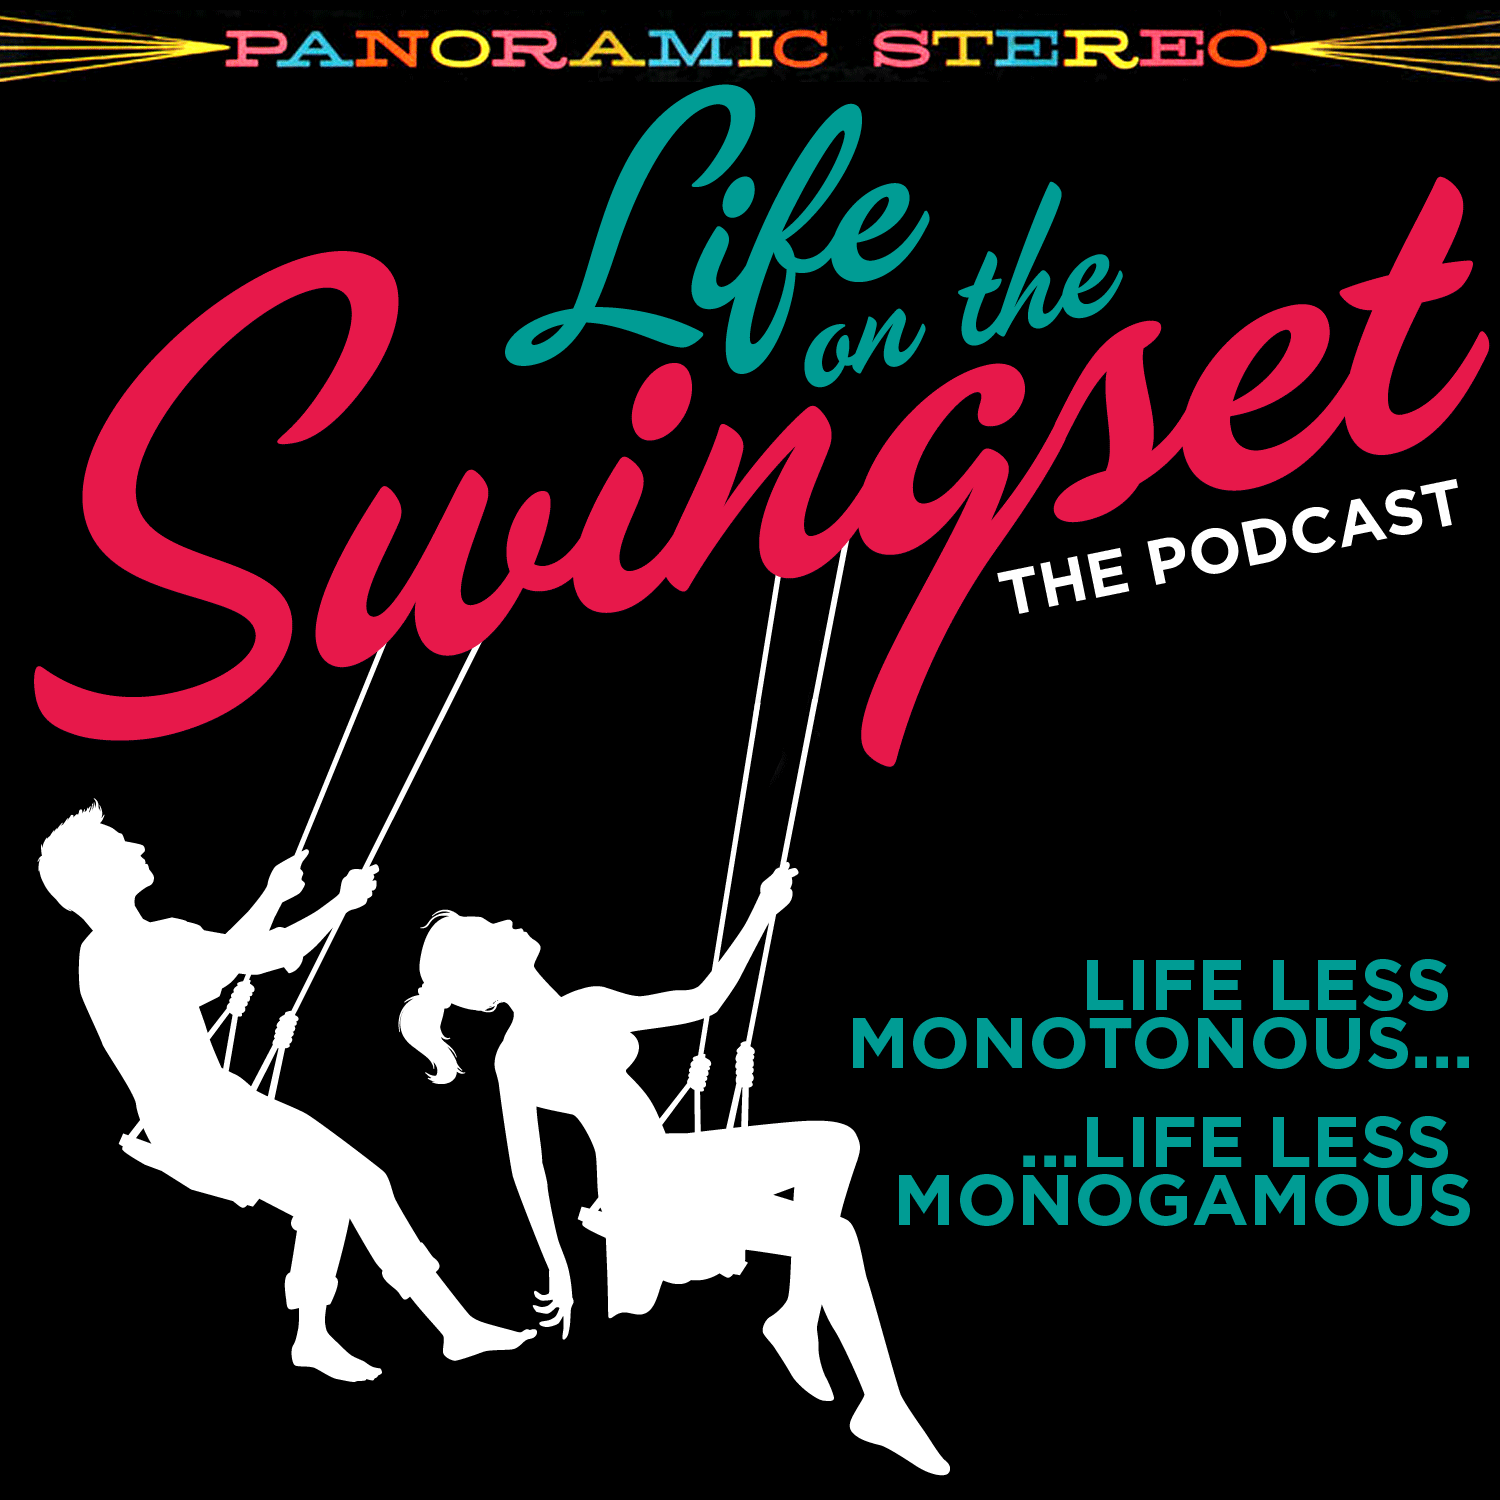 2014-Swingset-Podcast-Logo---in-Stereo